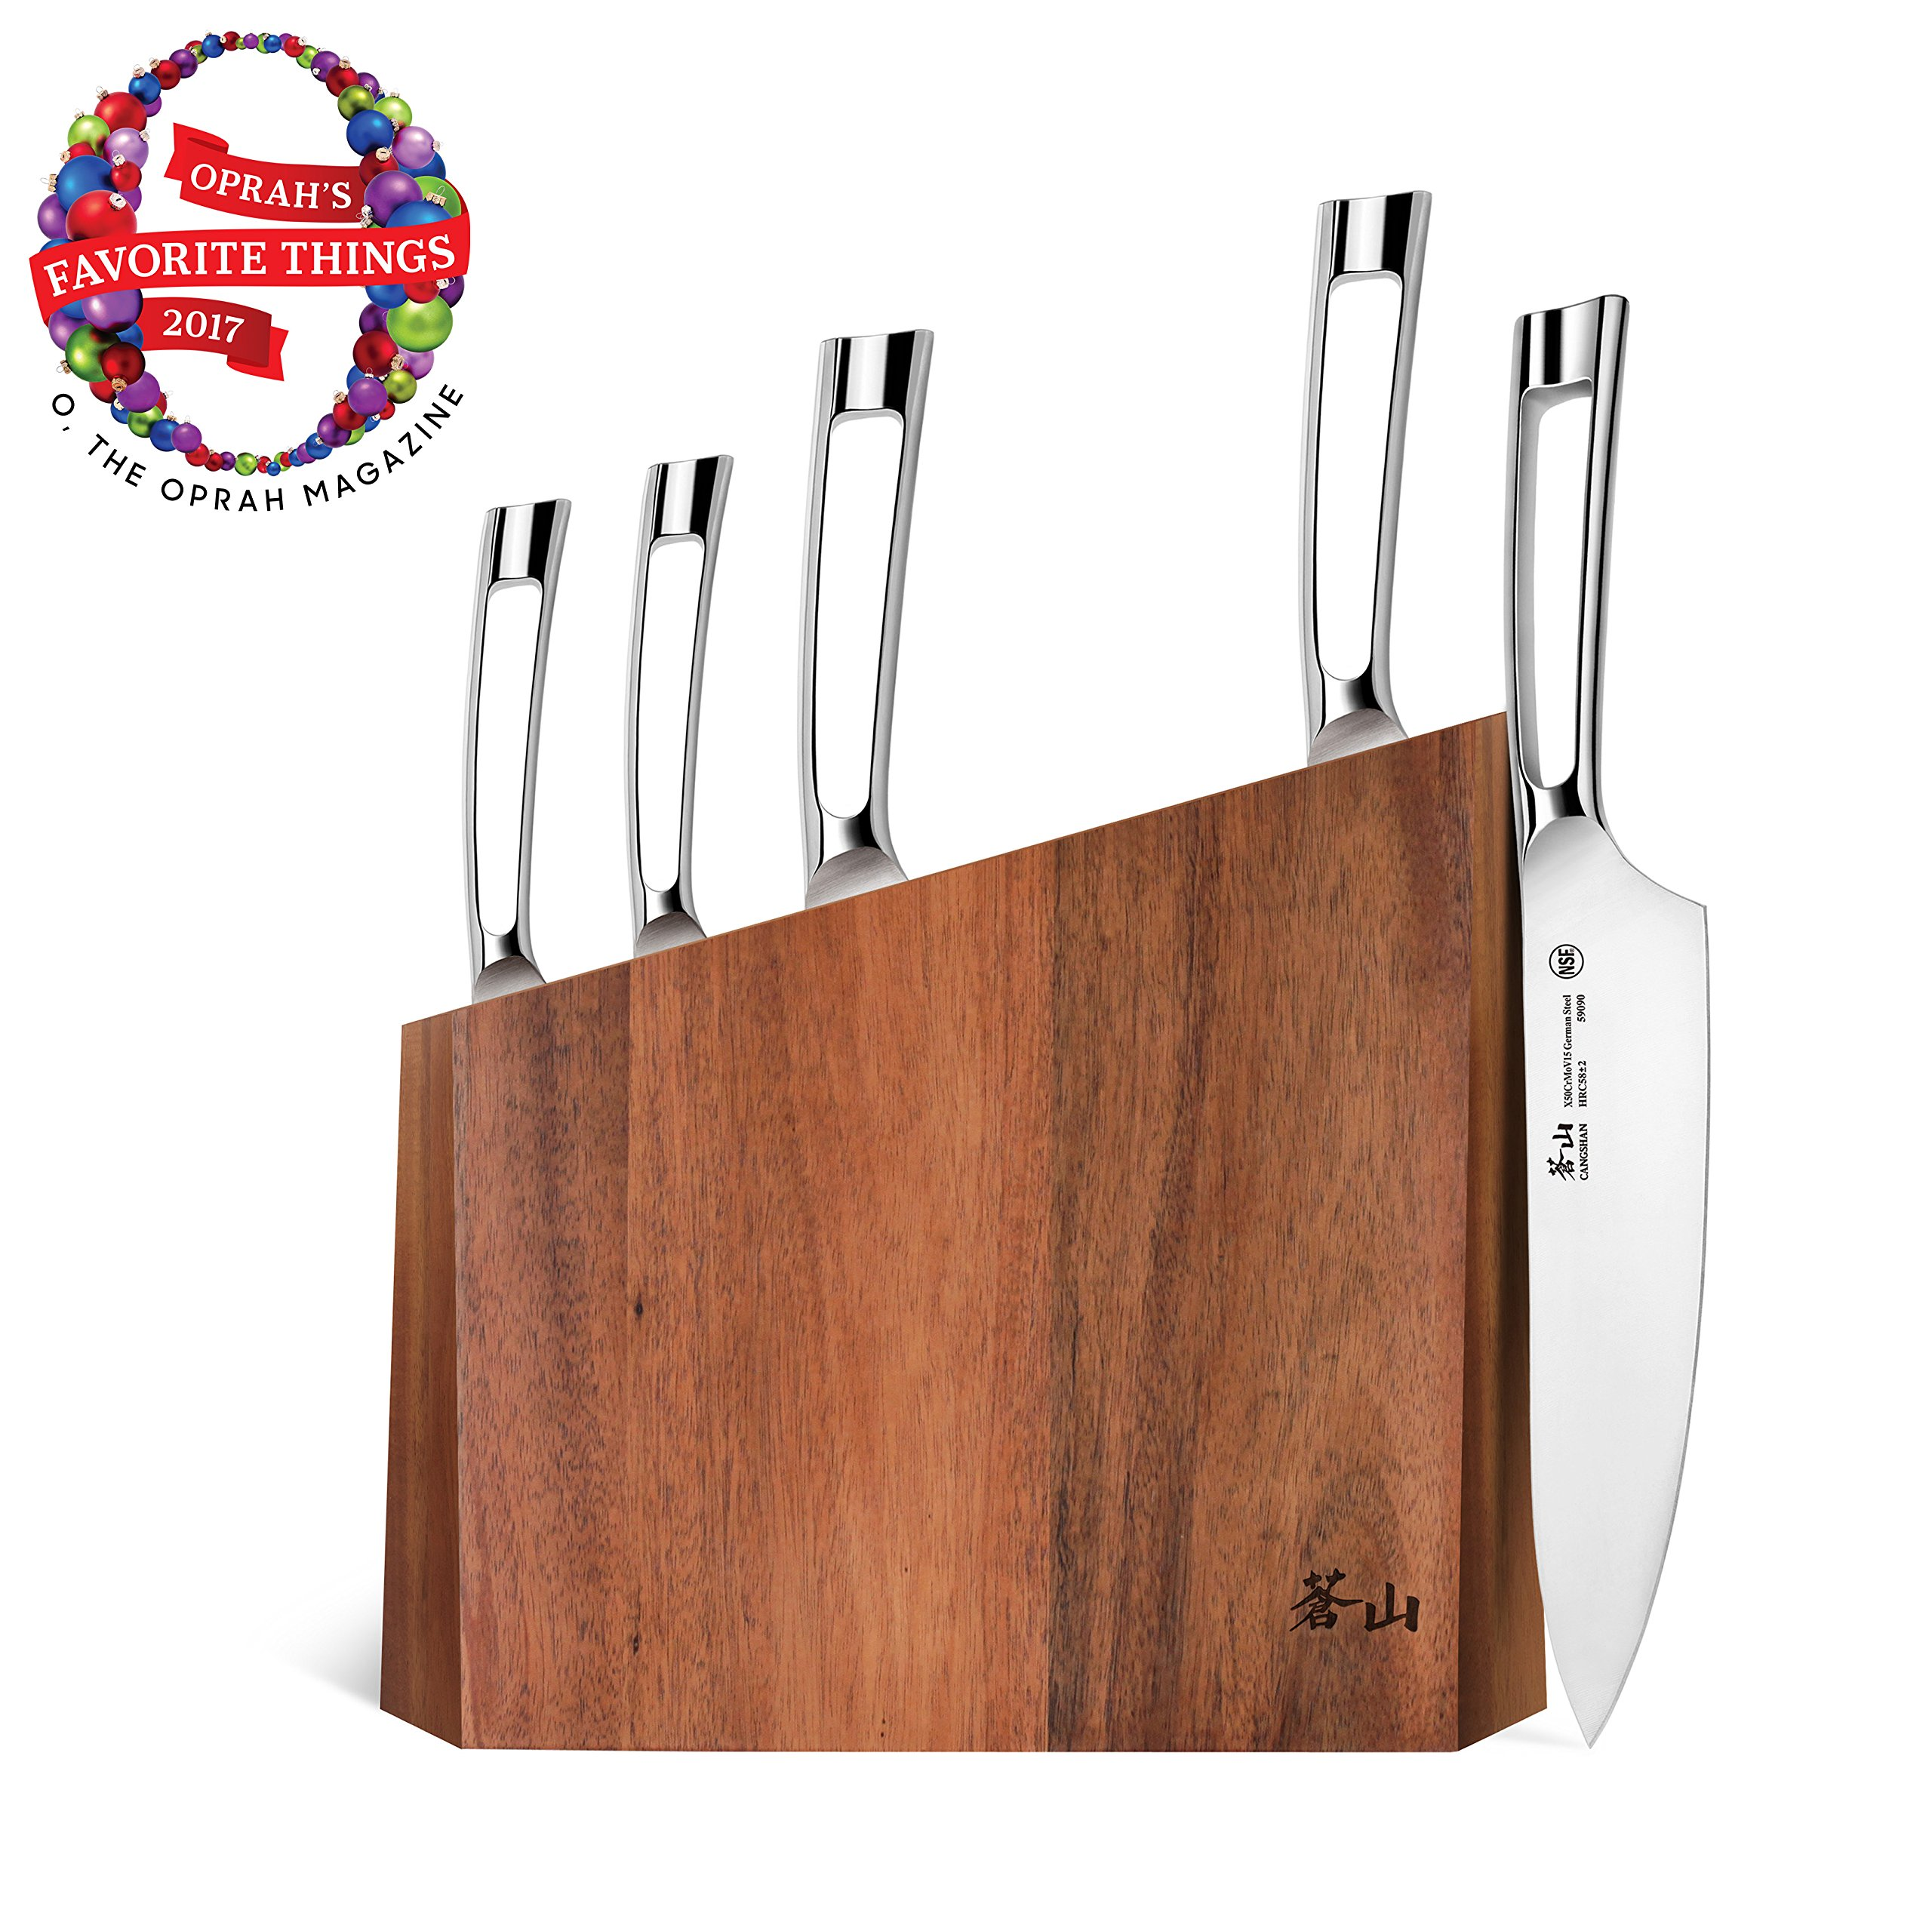 Cangshan N1 Series 59205 6-Piece German Steel Forged Knife Block Set, Oprah's Favorite Things 2017 by Cangshan